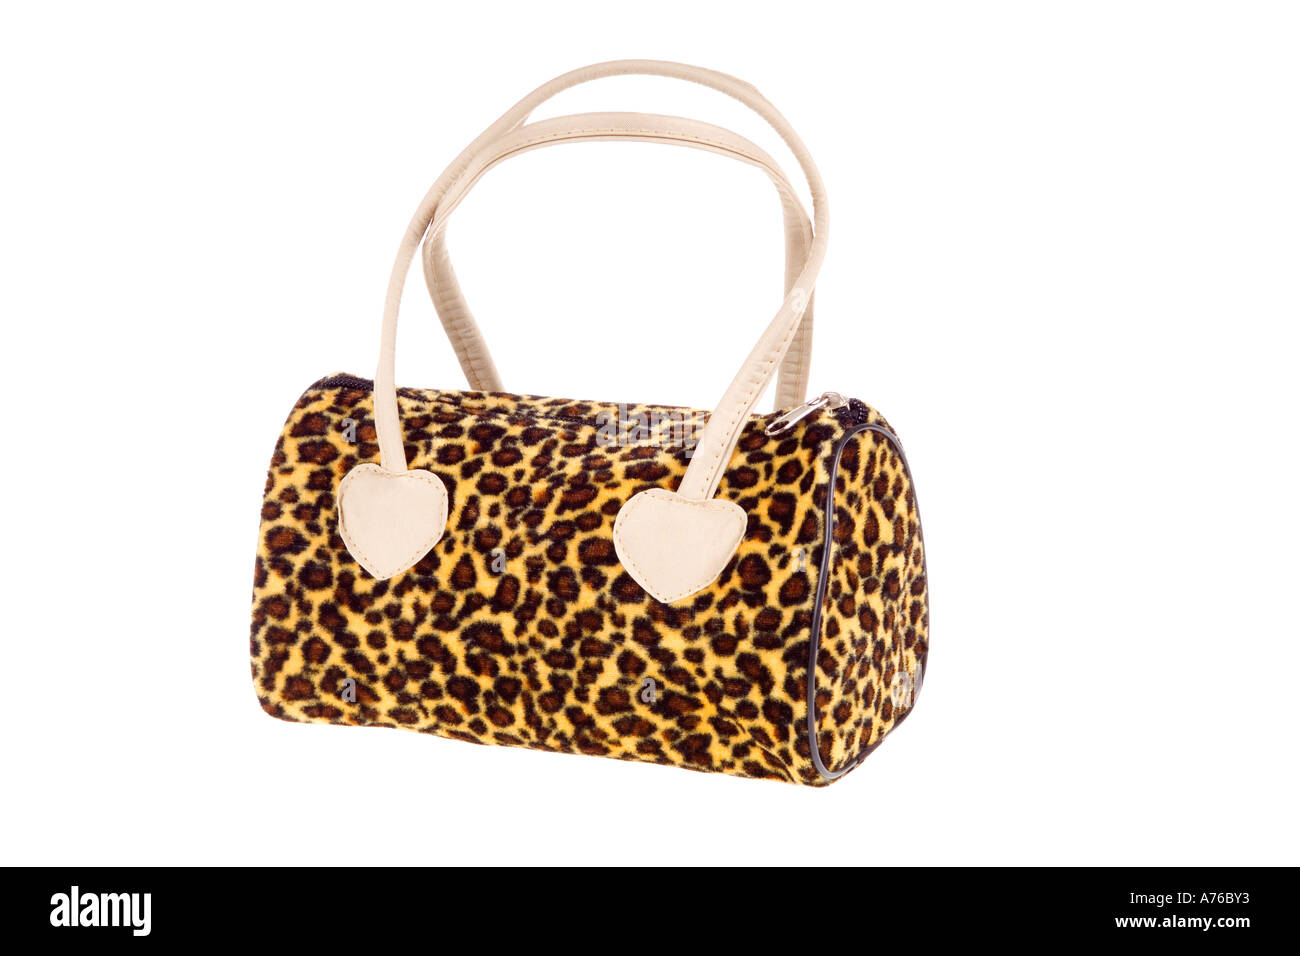 04eda83521c9f9 Kitsch fake leopard print handbag on a pure white background. - Stock Image